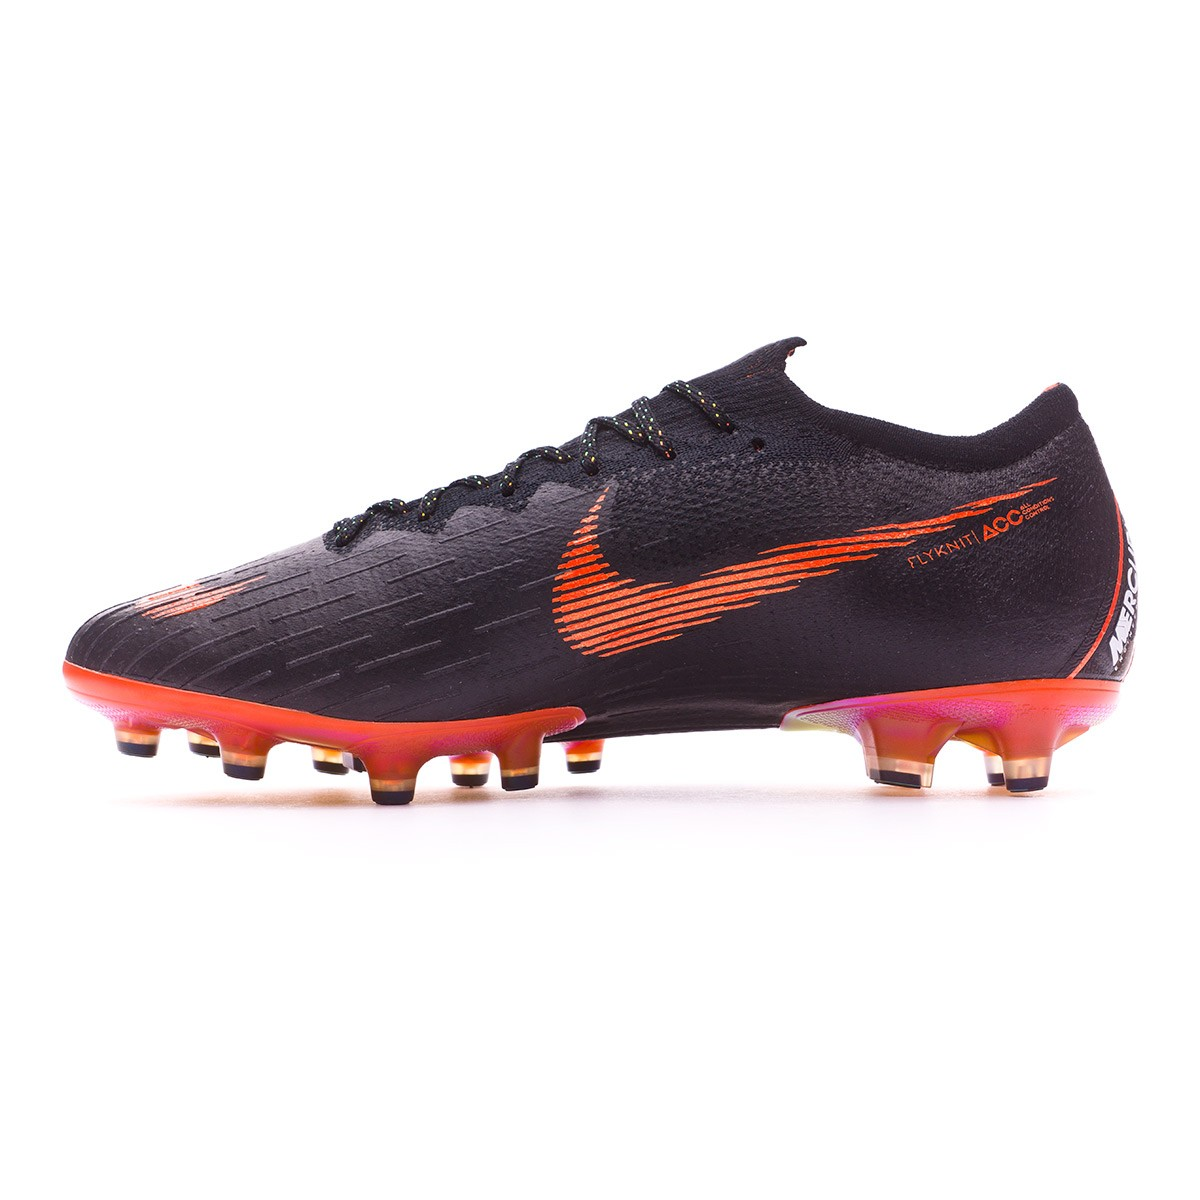 save off c91bc 98478 Football Boots Nike Mercurial Vapor XII Elite AG-Pro Black-Total orange- White - Football store Fútbol Emotion